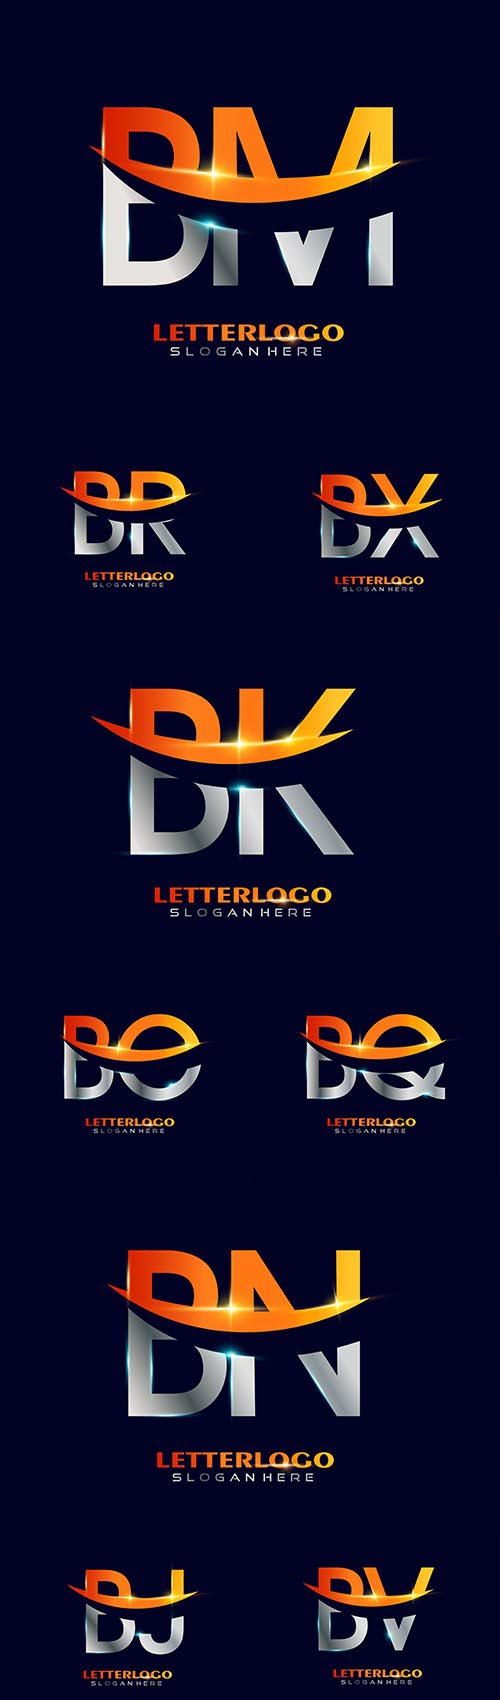 Initial letter and Brand name company logos design 2